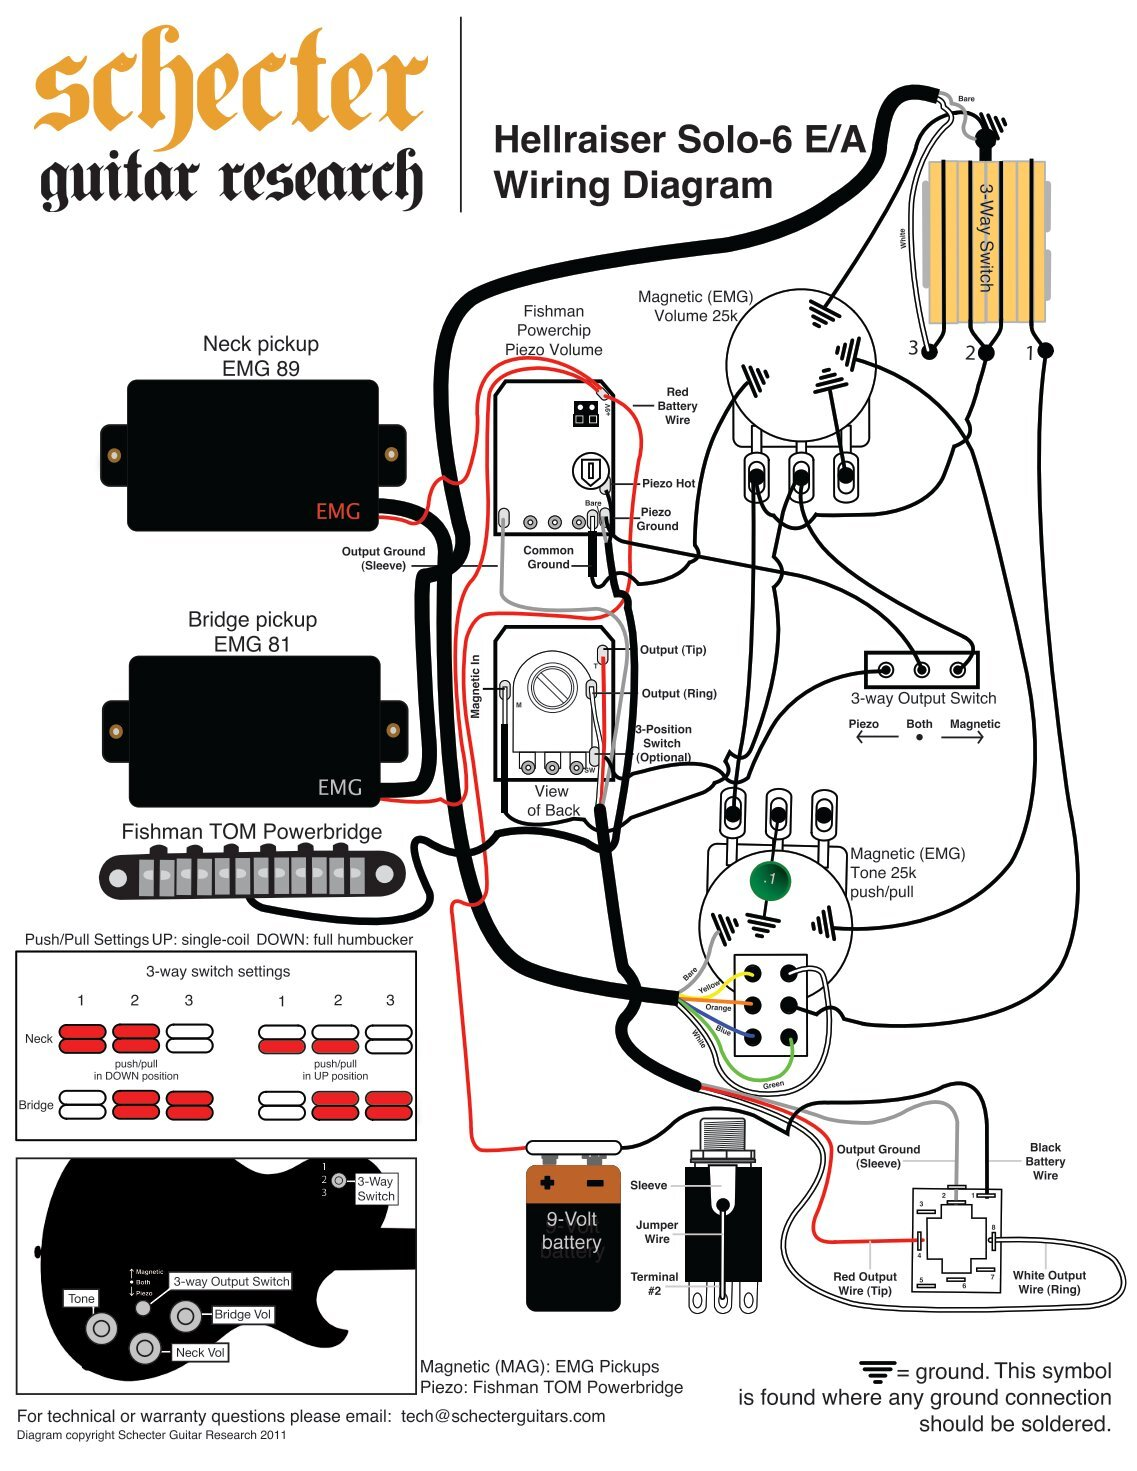 Schecter Wiring Diagrams Electrical Diagram Free Download 8 String Pickups Explained C 1